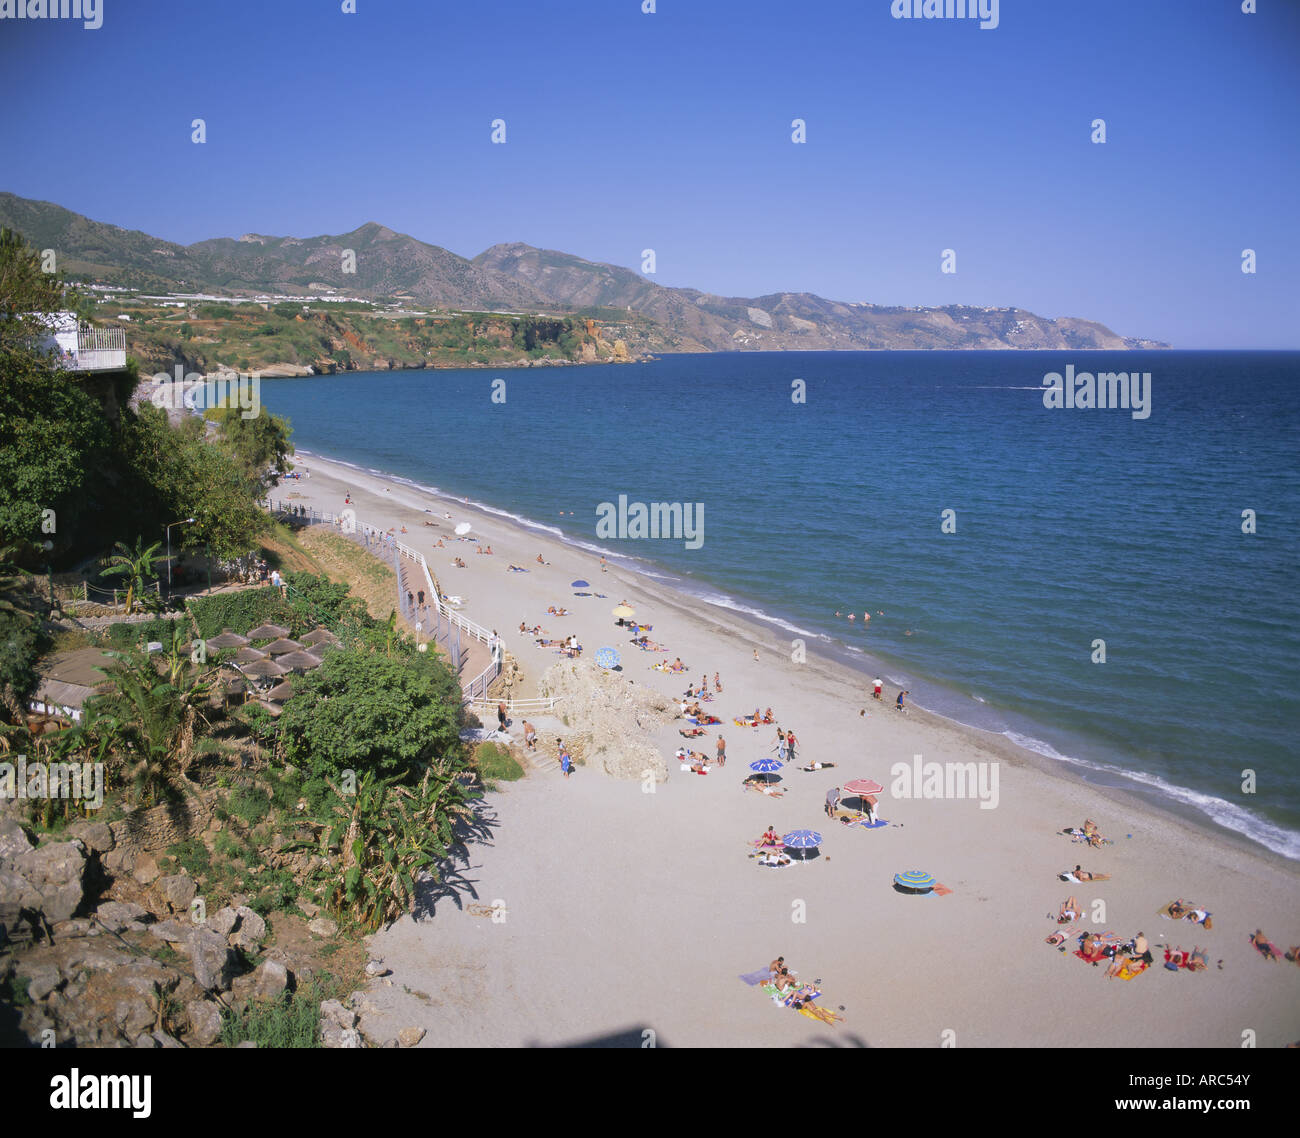 Nerja, Costa del Sol, Andalucia (Andalusia), Spain, Europe - Stock Image